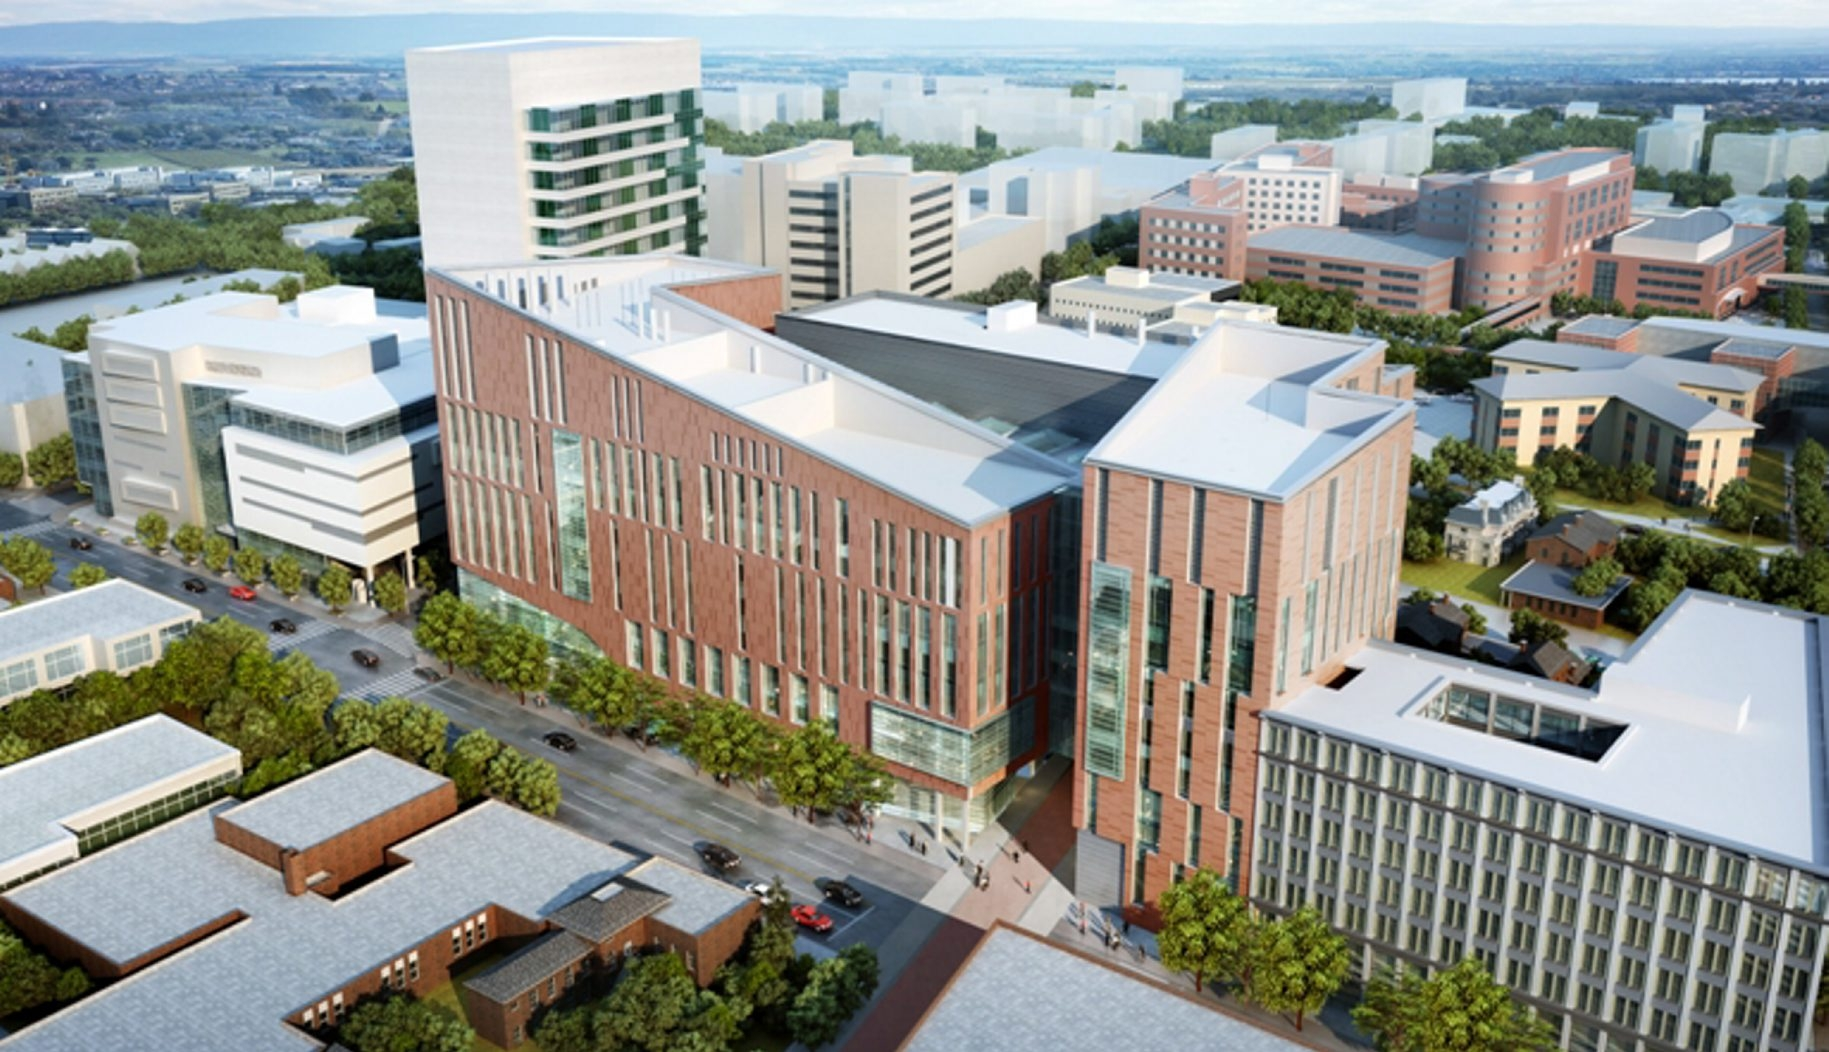 The design for UB's new Medical School at Main and High streets, unveiled Wednesday, includes two L-shaped buildings joined by a six-story atrium, which is naturally illuminated by skylights and glass walls.